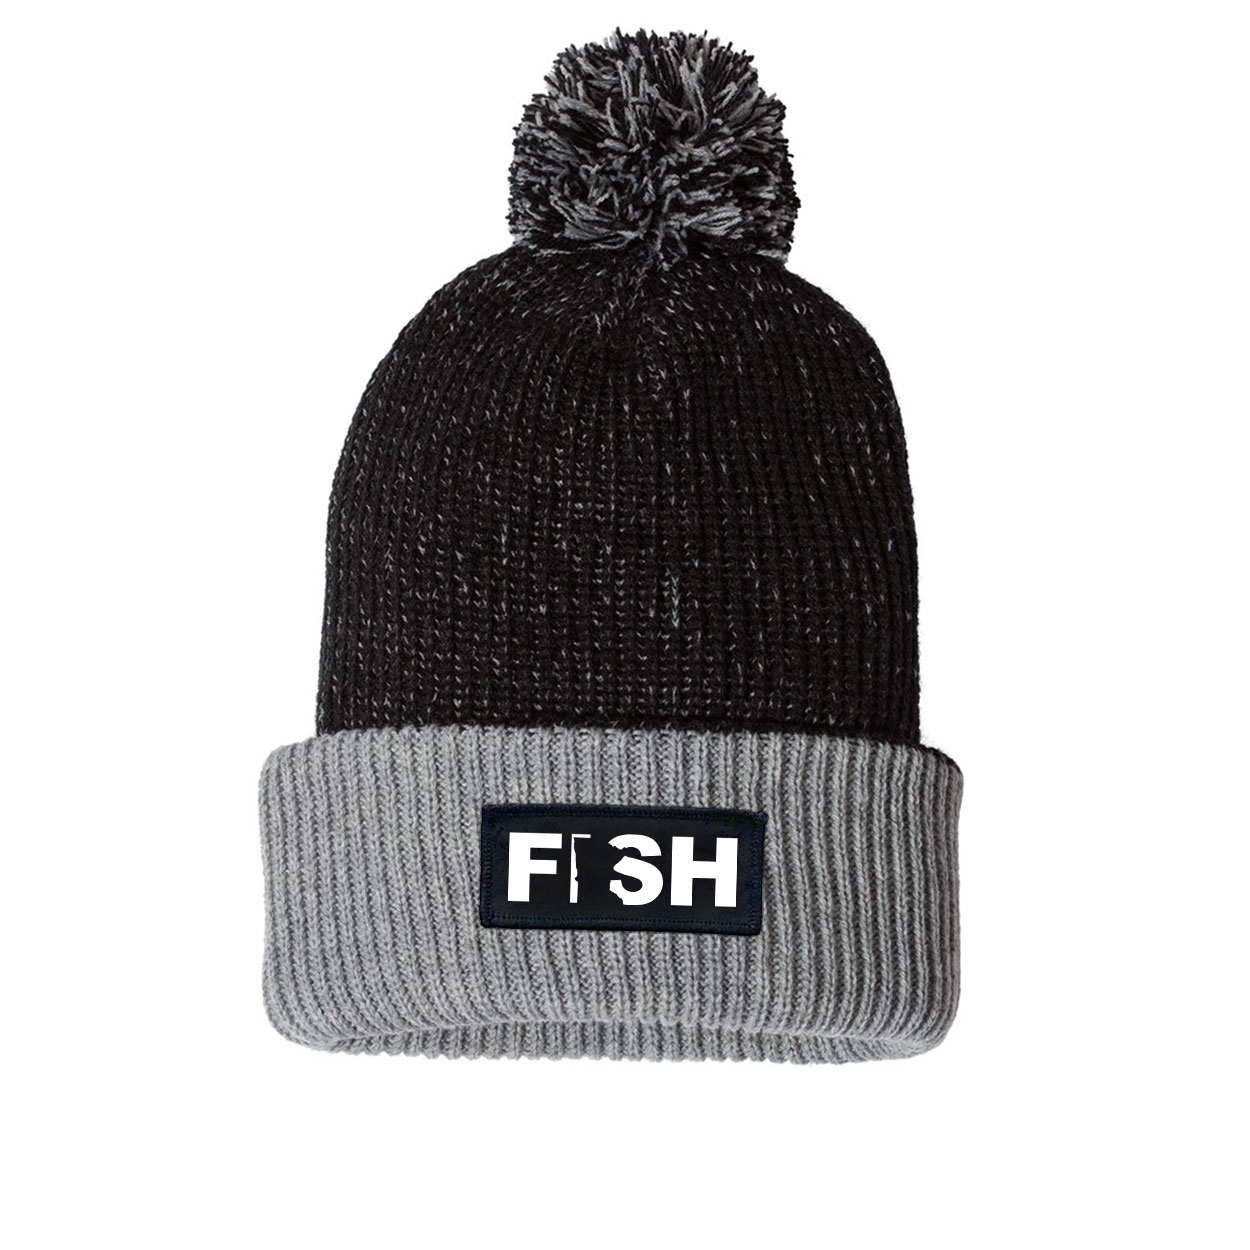 Fish Minnesota Night Out Woven Patch Roll Up Pom Knit Beanie Black/Gray (White Logo)